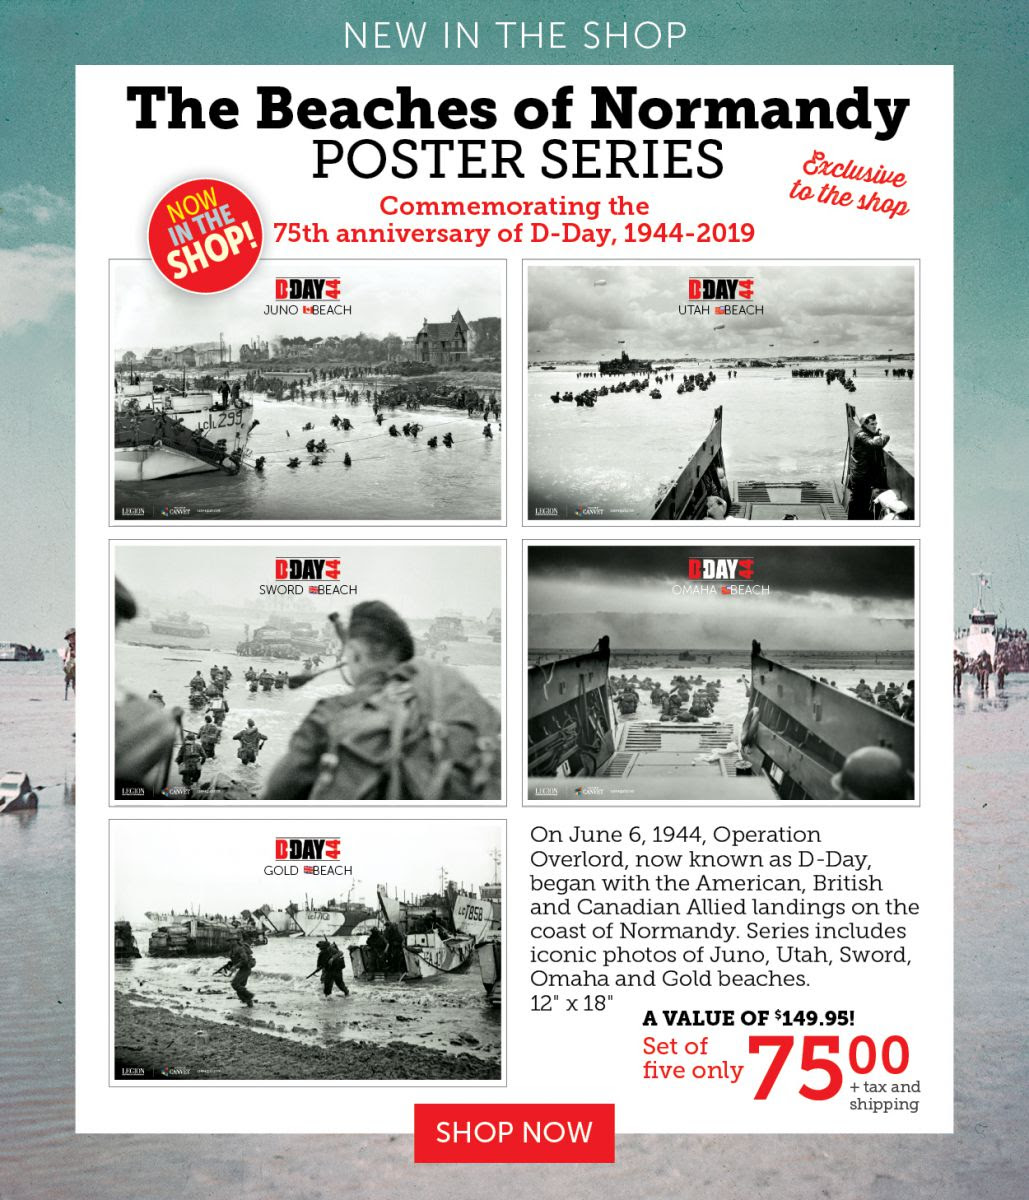 The beaches of Normandy Poster Series